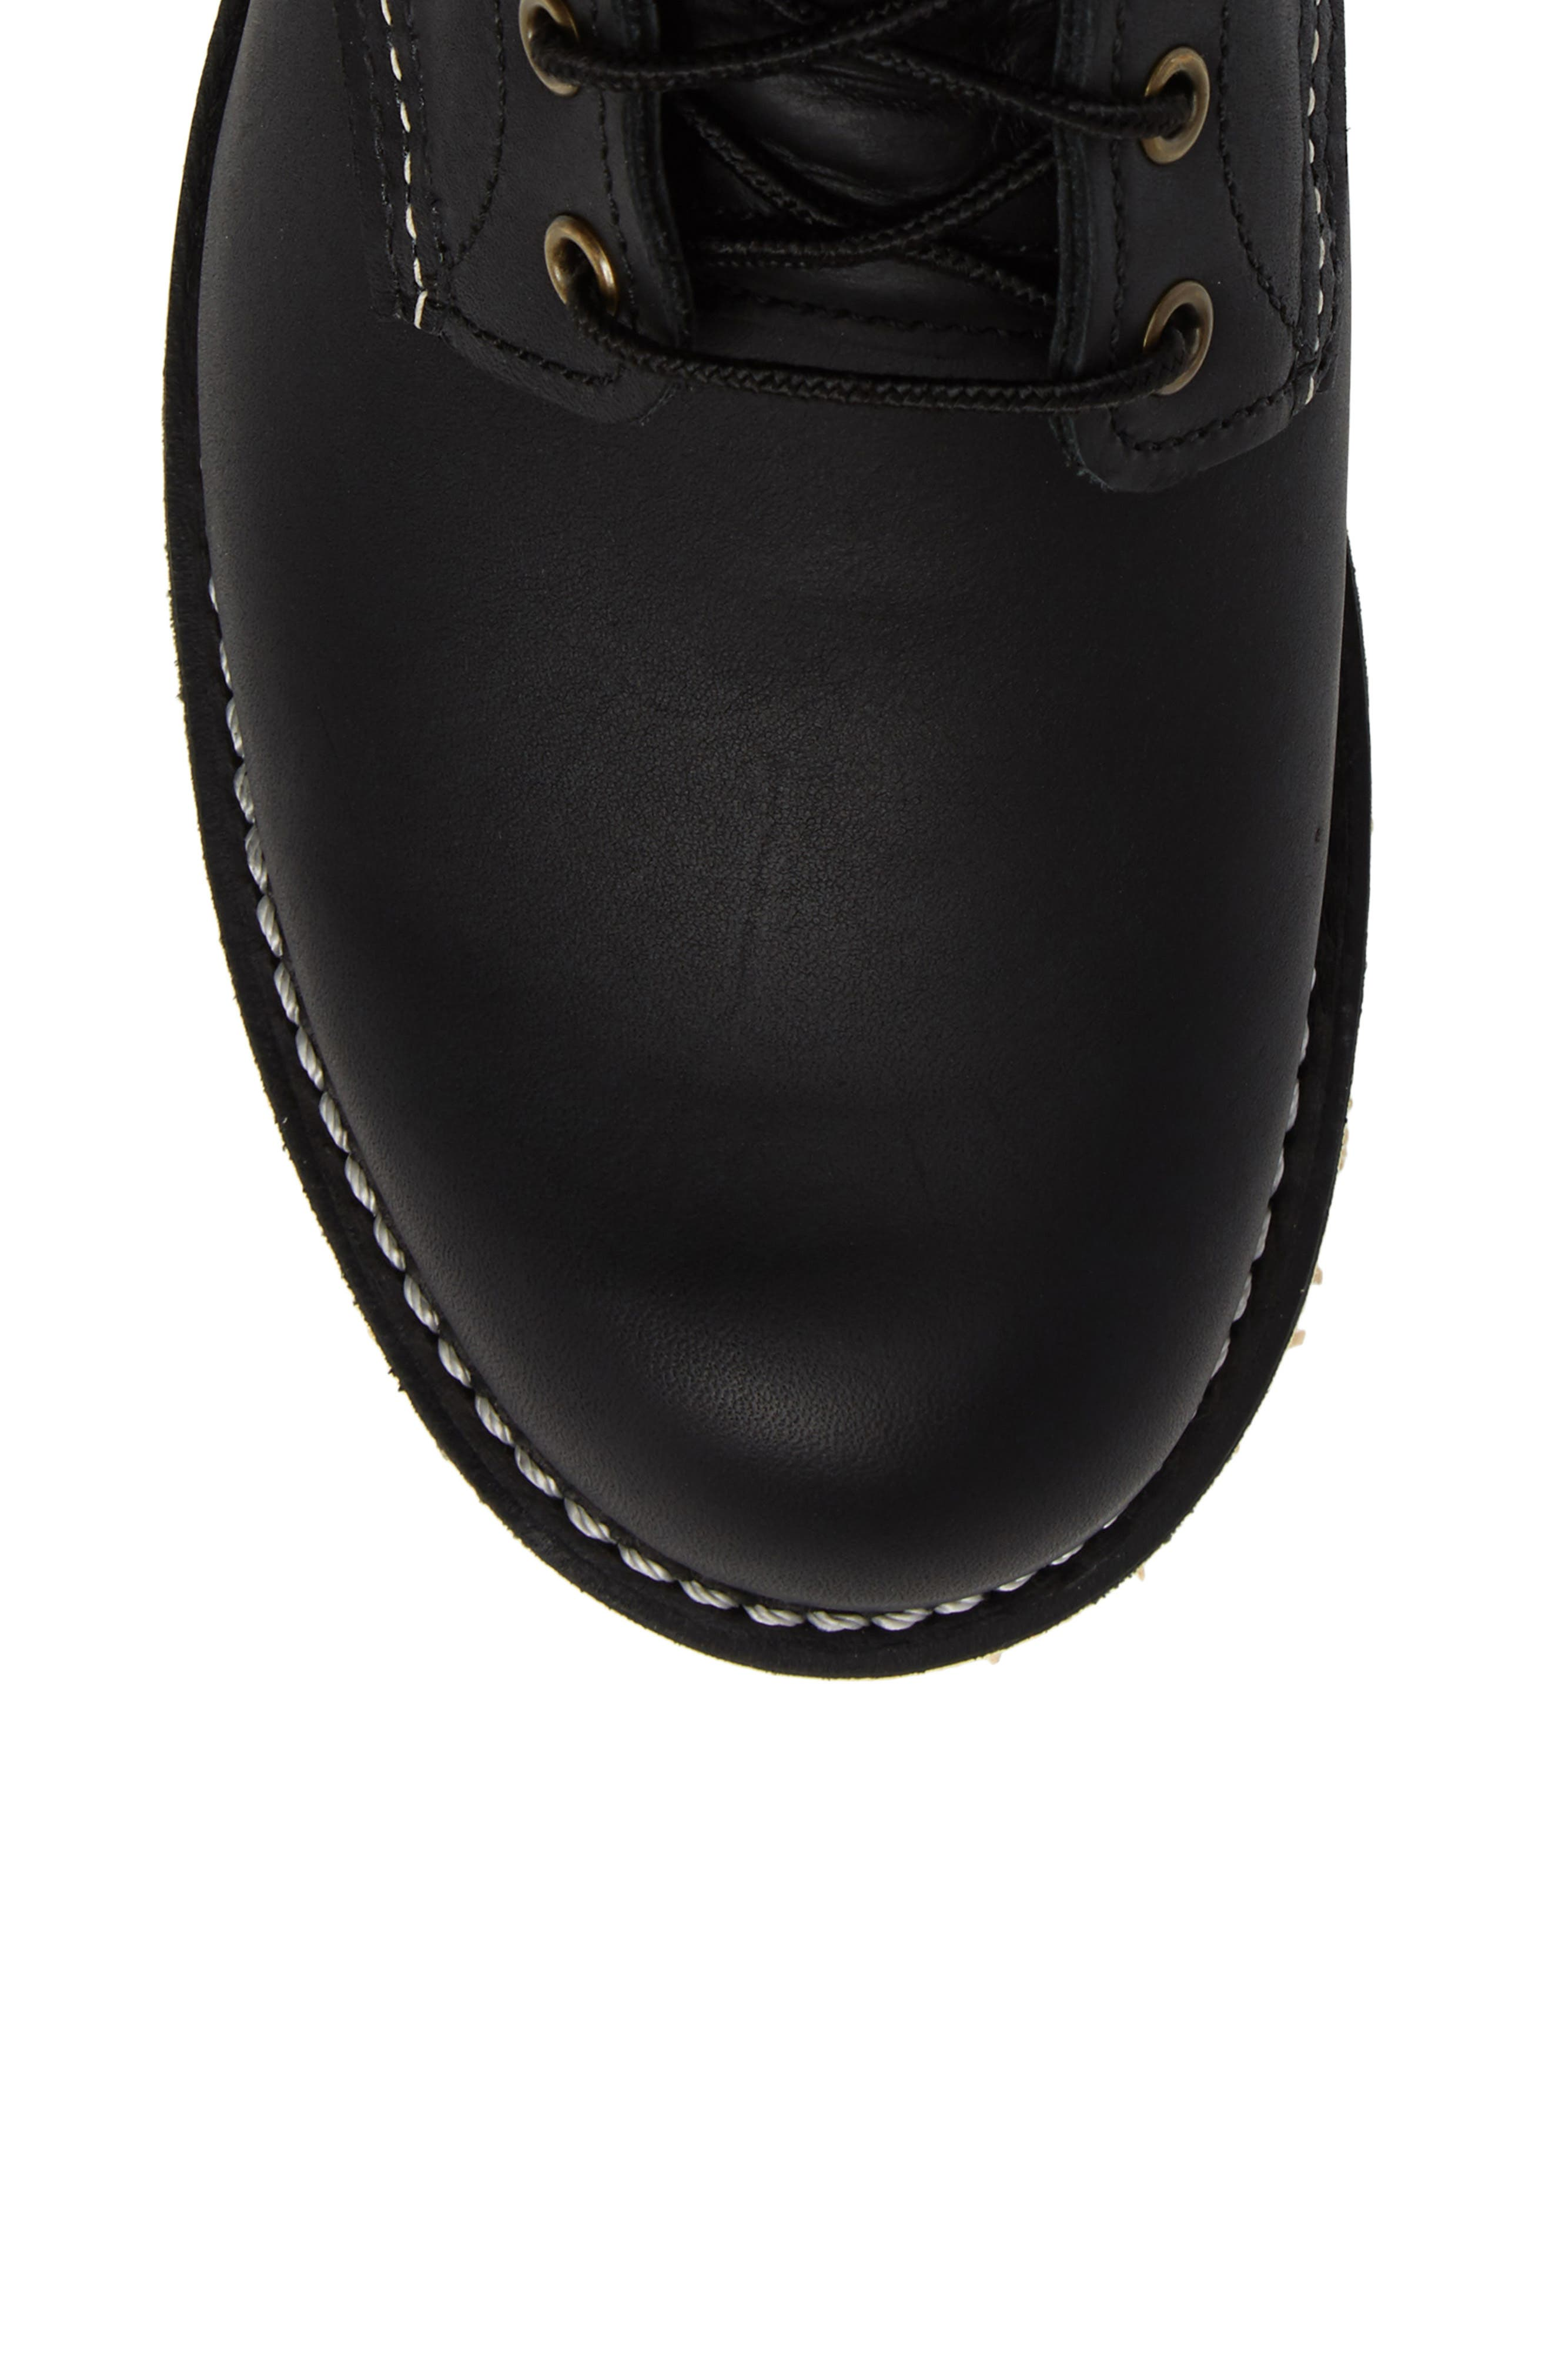 RED WING, Rover Plain Toe Boot, Alternate thumbnail 5, color, BLACK HARNESS LEATHER